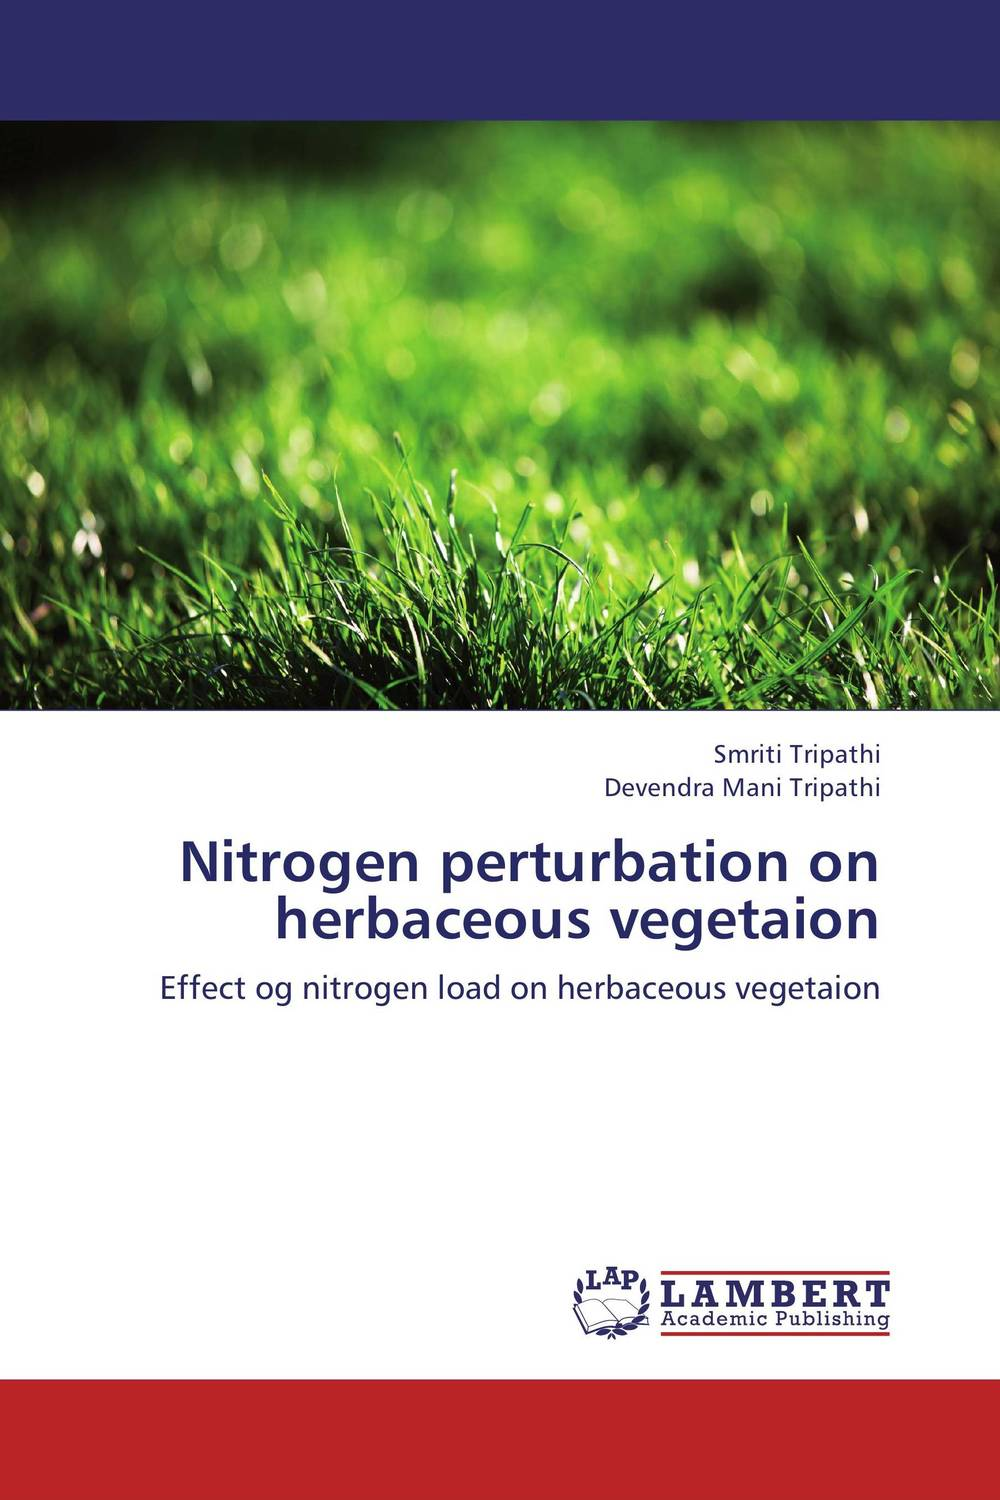 Nitrogen perturbation on herbaceous vegetaion subodh kumar and rakesh kumar response of organic nutrition and nitrogen on mustard brassica juncea